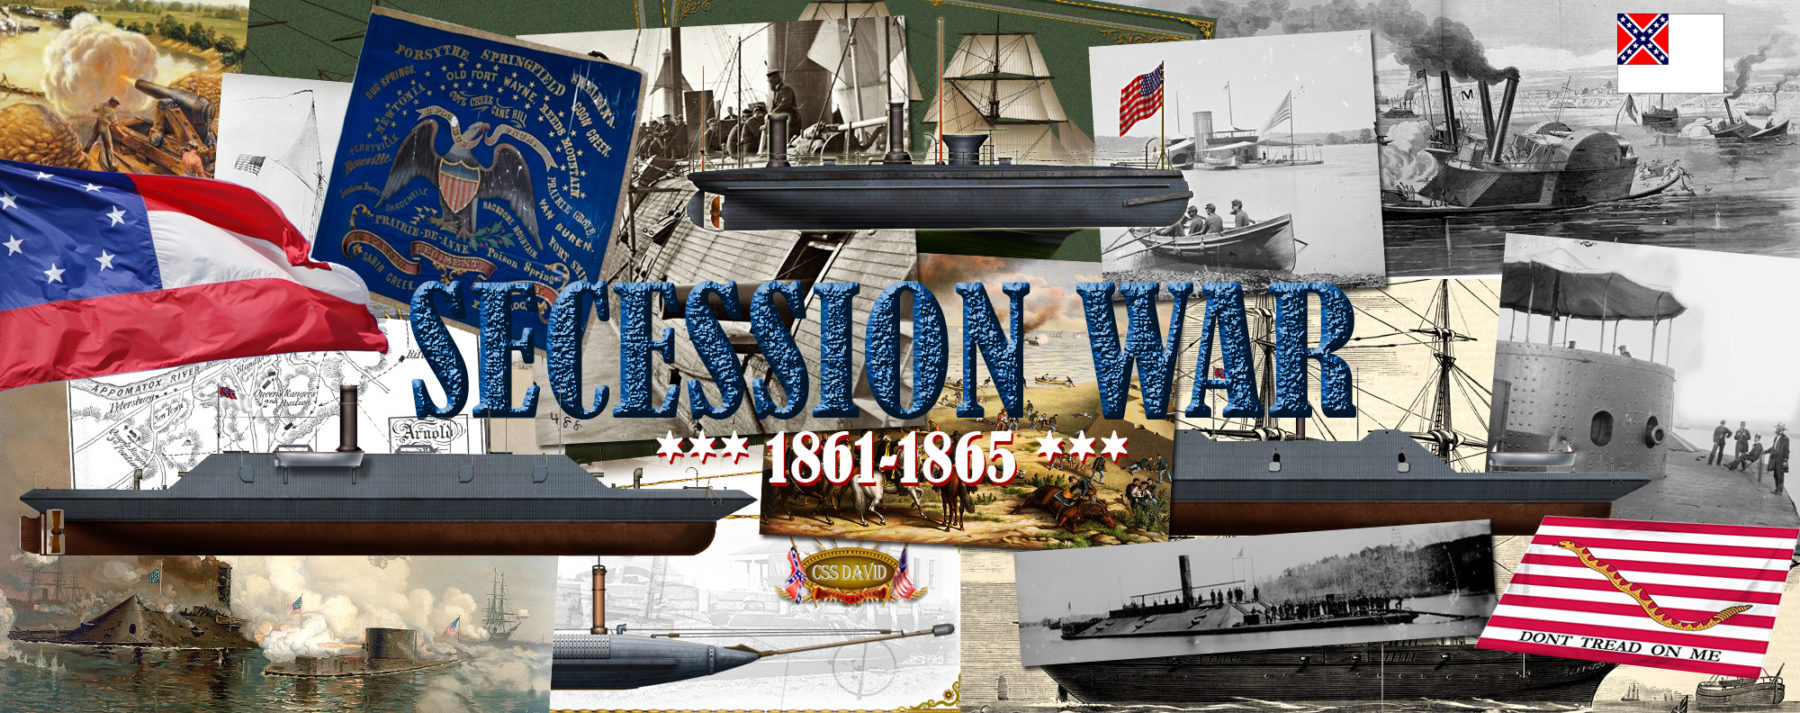 [New Page] The Secession War